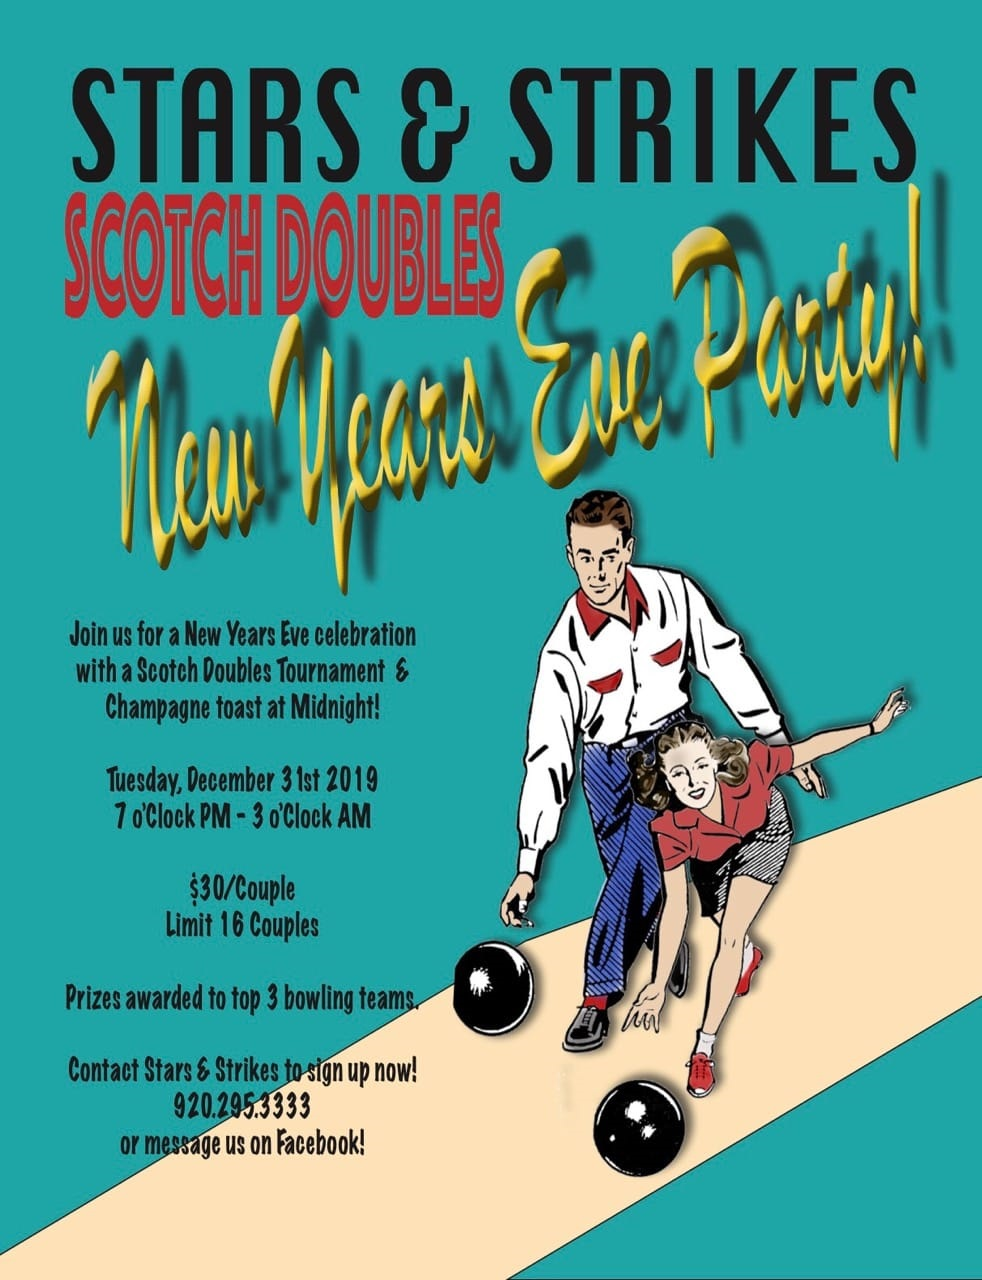 New Year's Eve Party/Scotch Doubles Tournament Couples bowling tournament